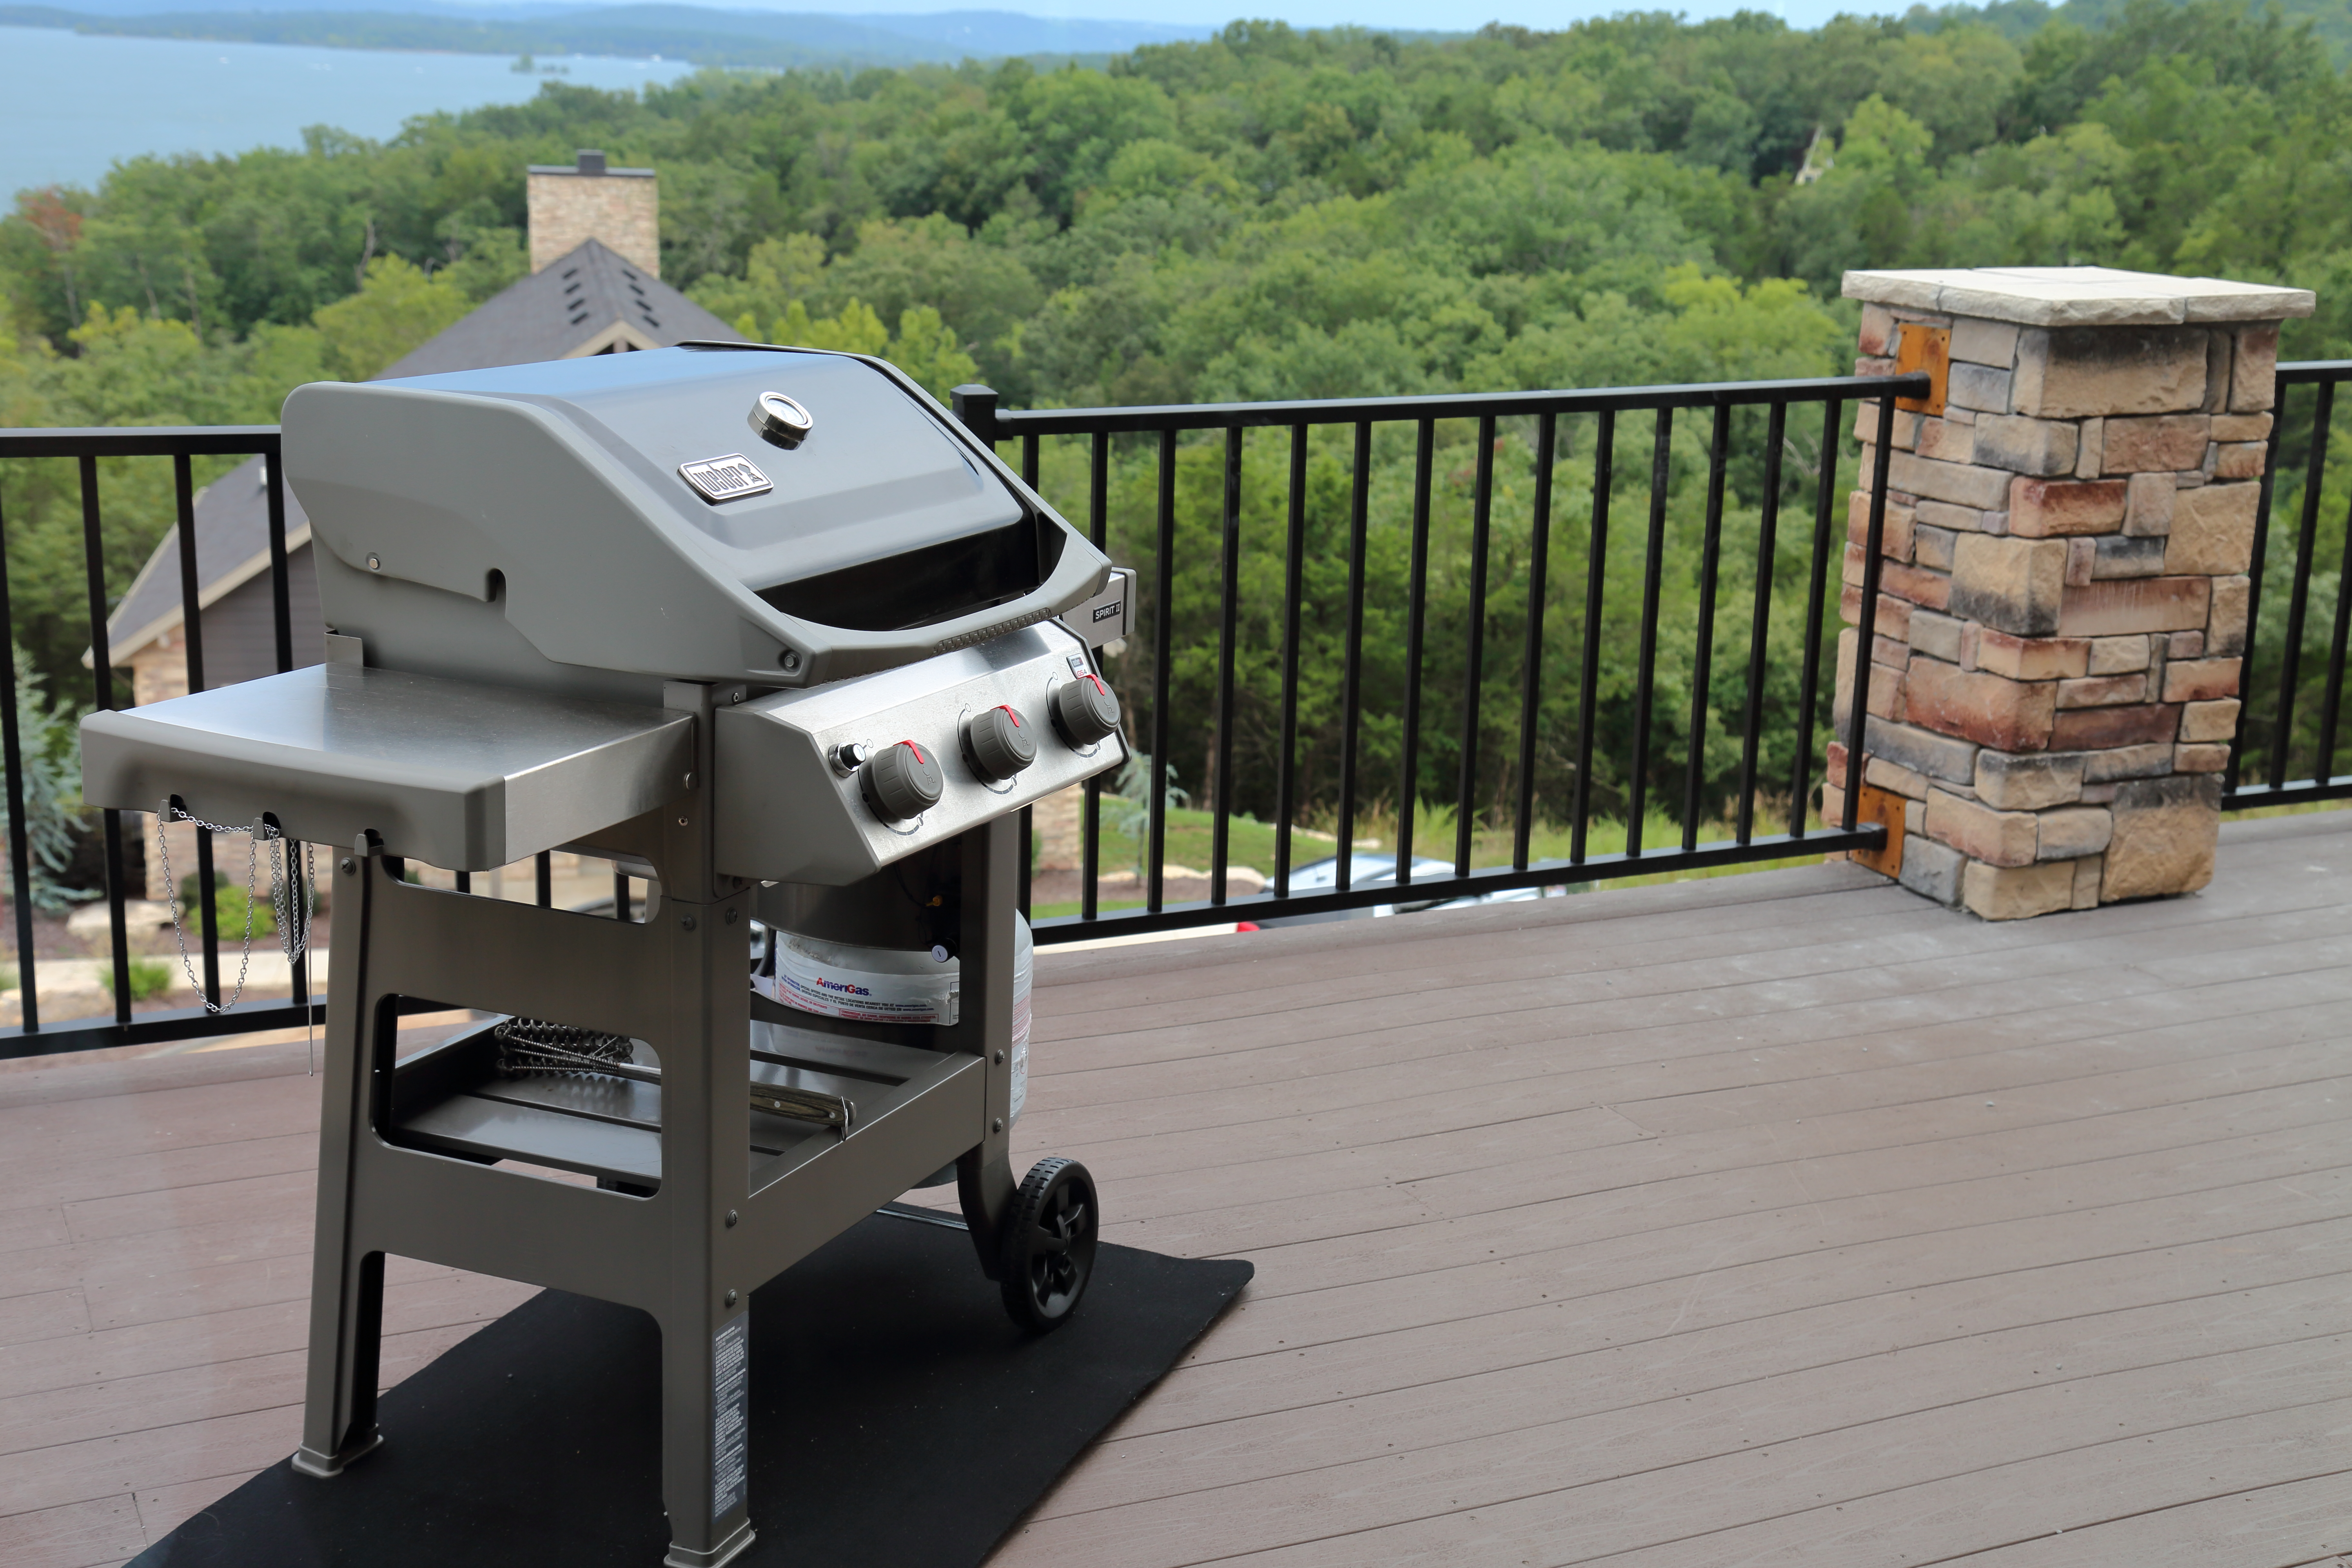 921A8040 - #2 deck & grill